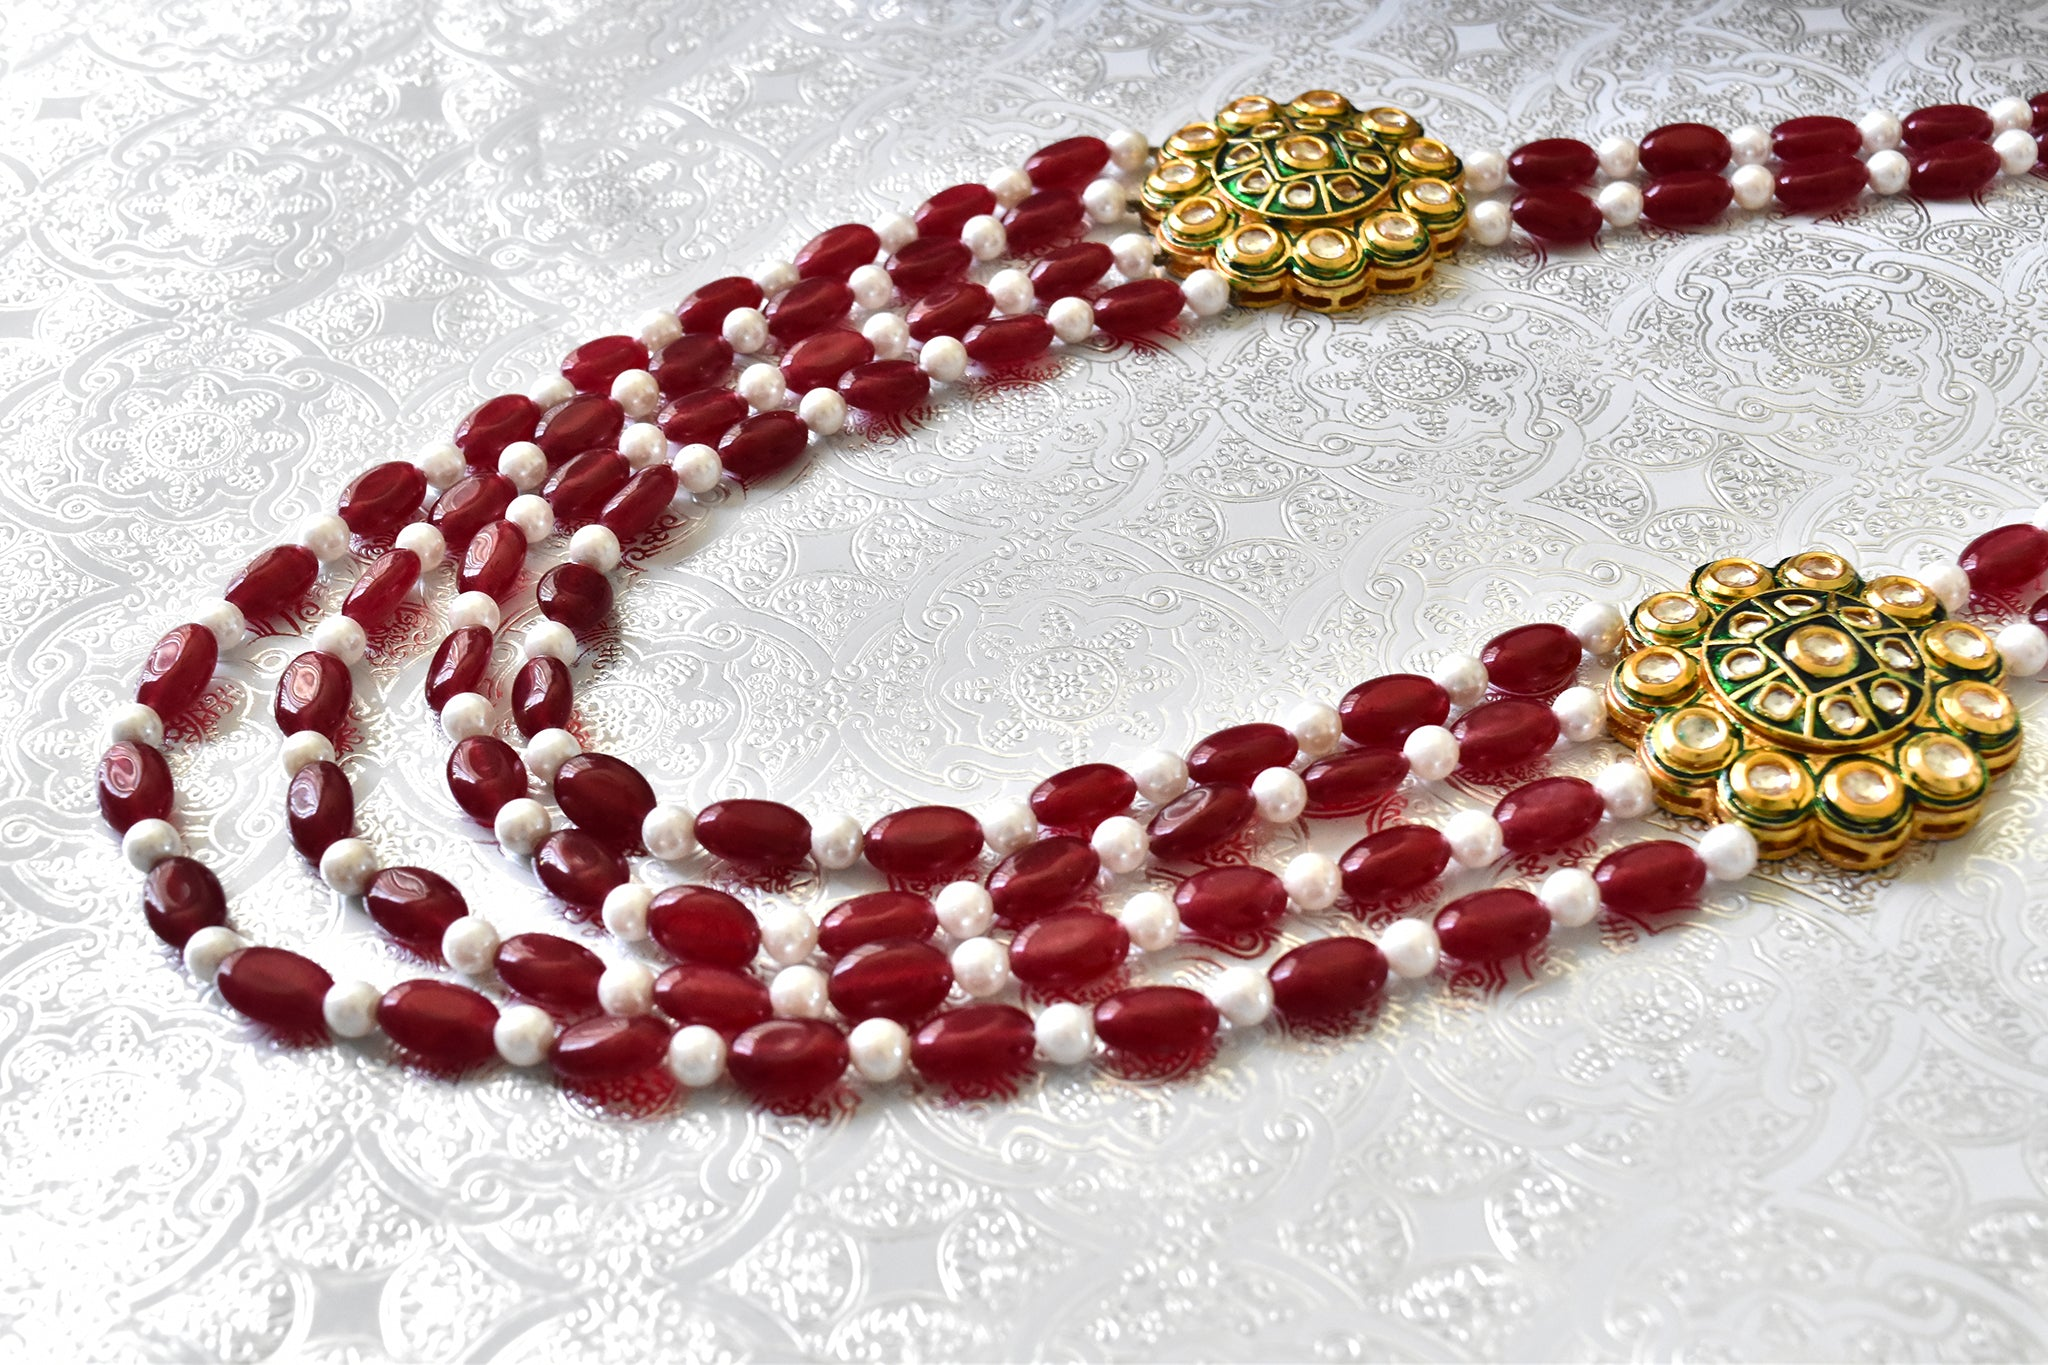 Shahnoor Pearl Ruby Set - The Pashm